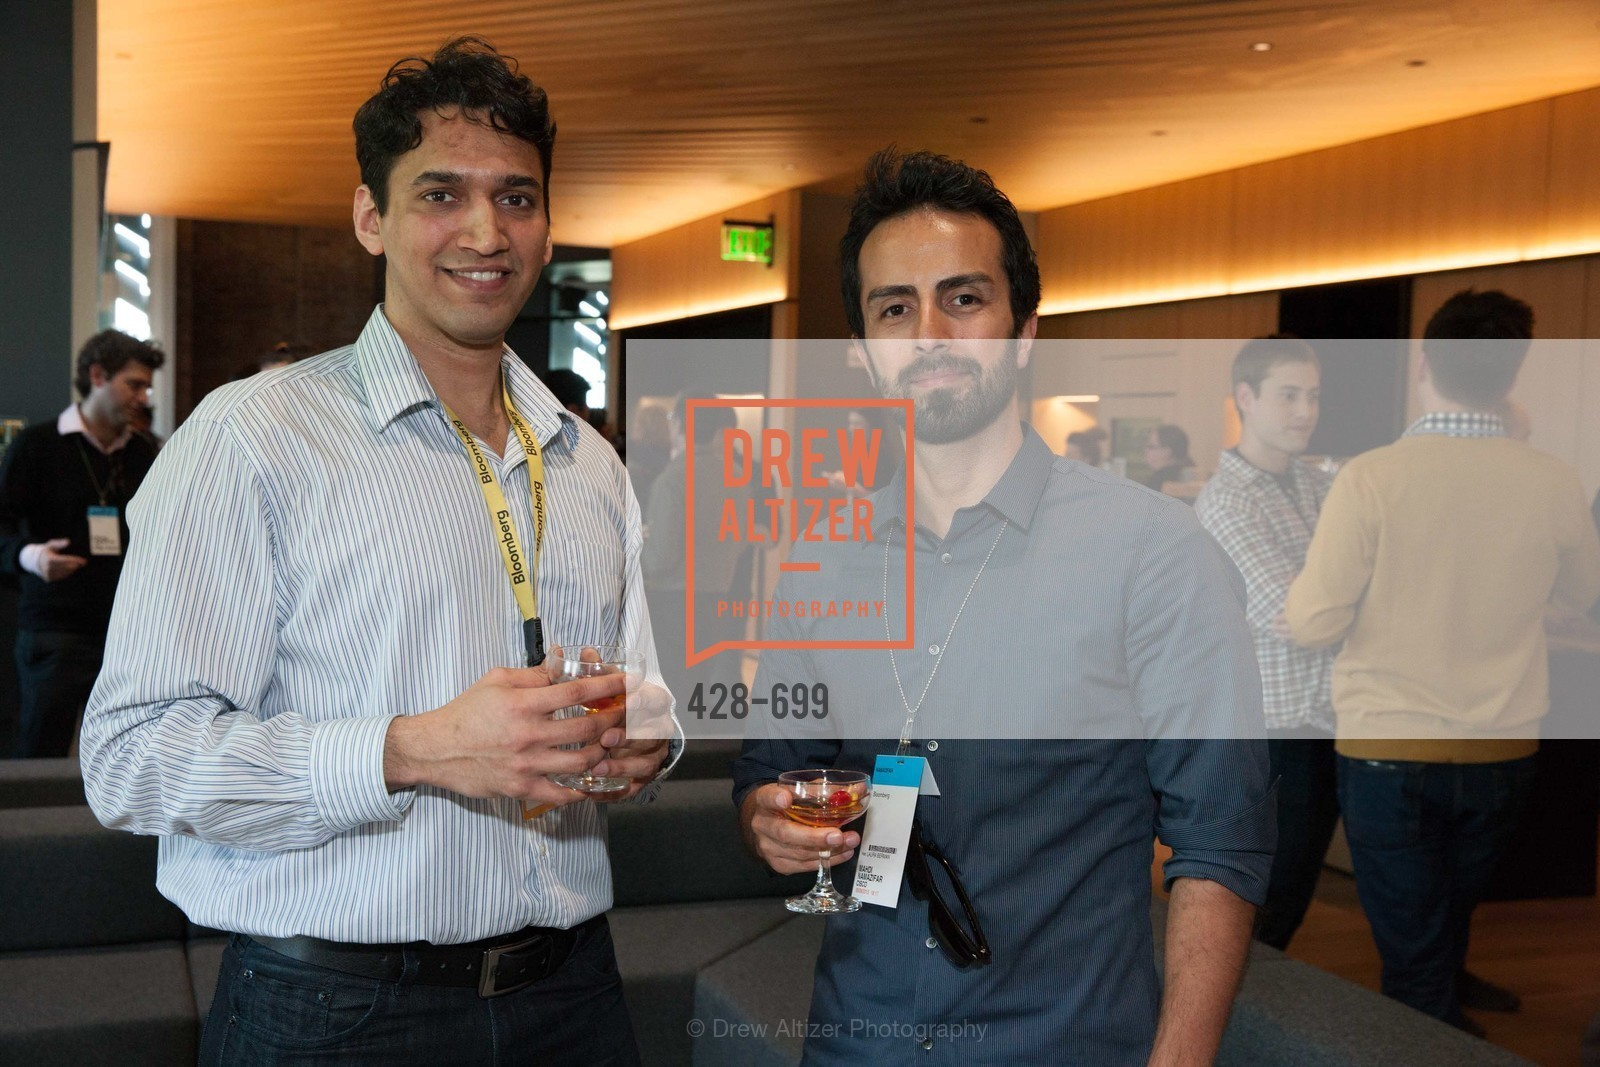 Densel Santhmayor, Mahdi Namazifar, BLOOMBERG Office Opening, US, May 7th, 2015,Drew Altizer, Drew Altizer Photography, full-service agency, private events, San Francisco photographer, photographer california